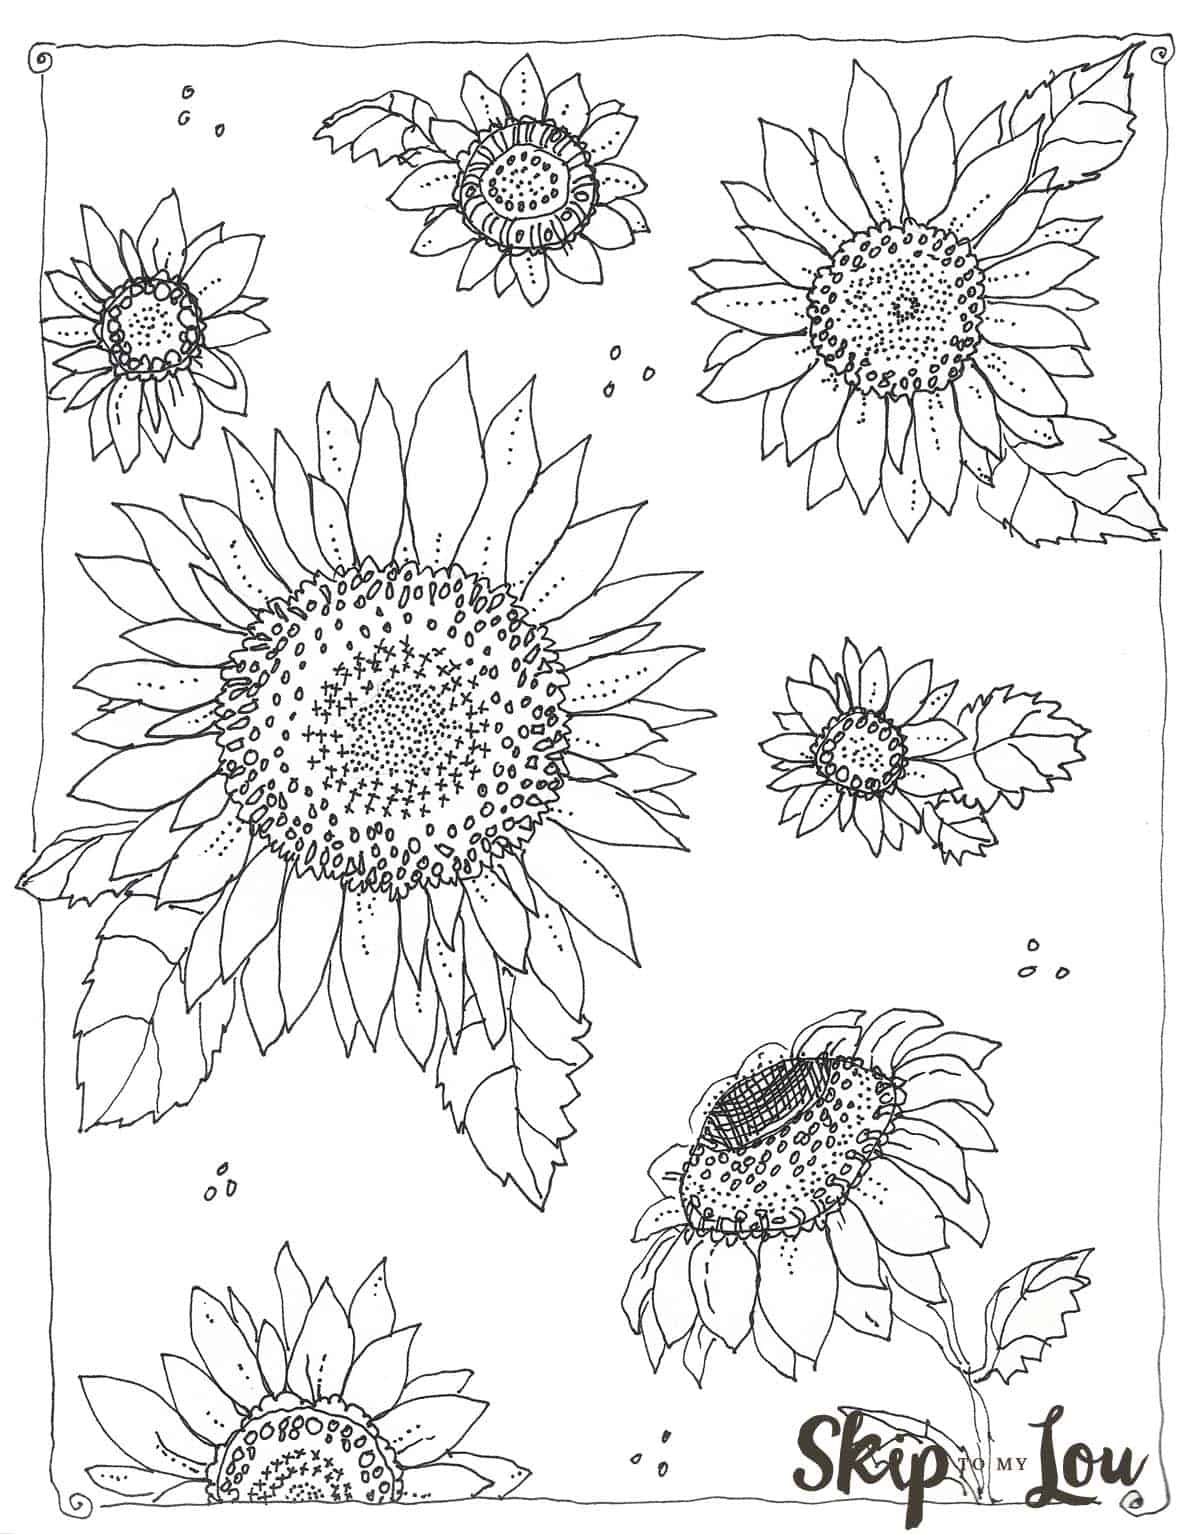 Kansas Day Sunflower Coloring Page Skip To My Lou